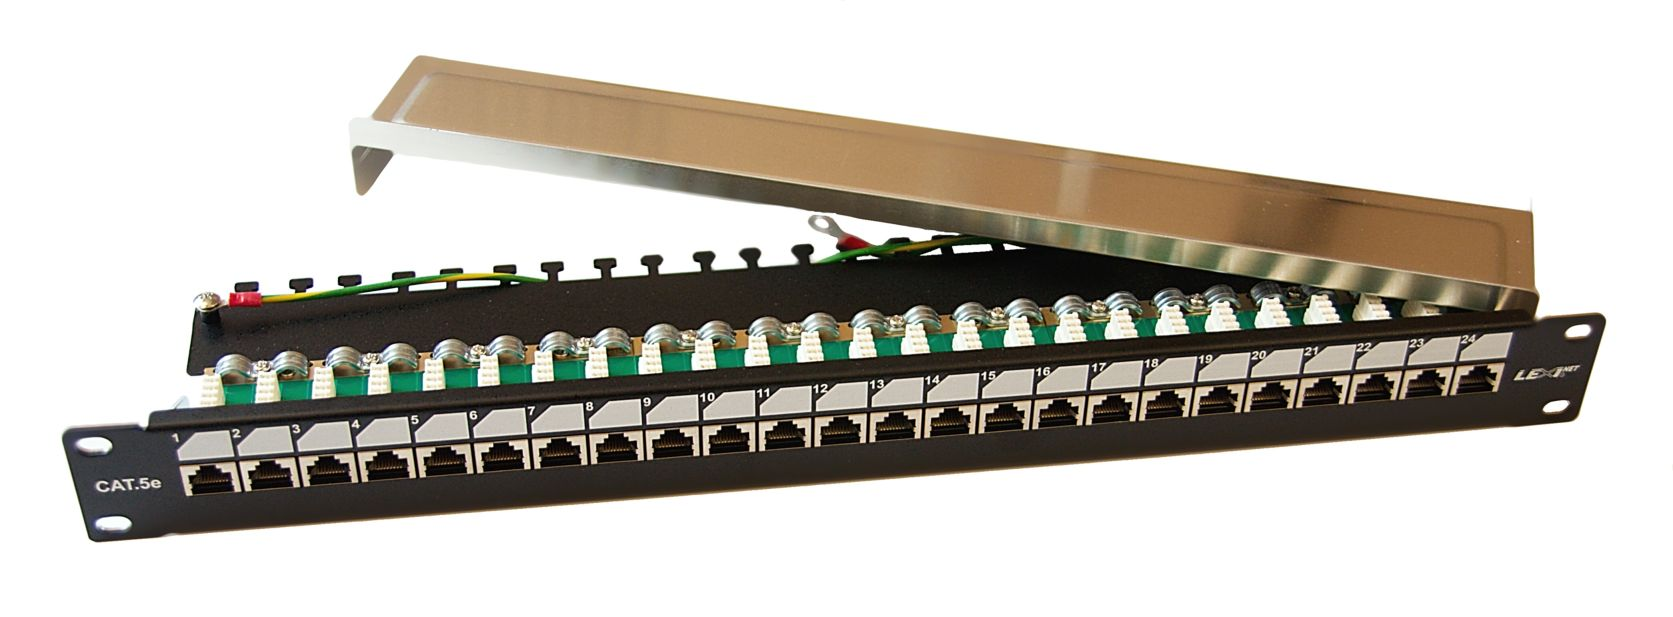 Patch panel EXCLUSIVE 24 portů C5e s poličkou osazený FTP